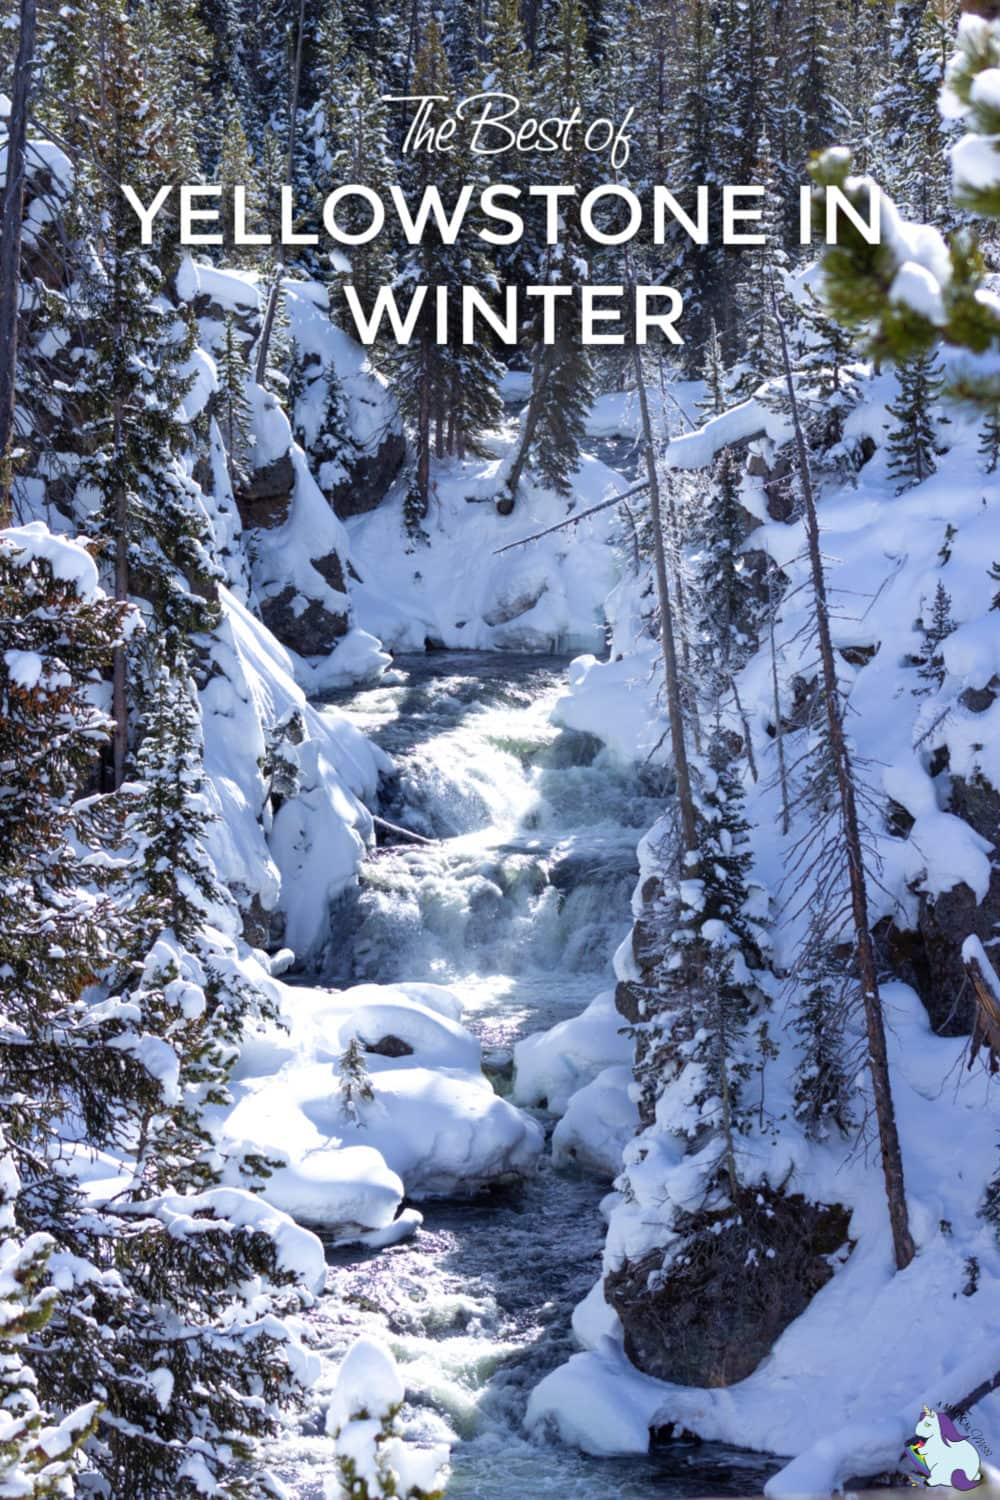 Waterfall in Yellowstone National Park in winter